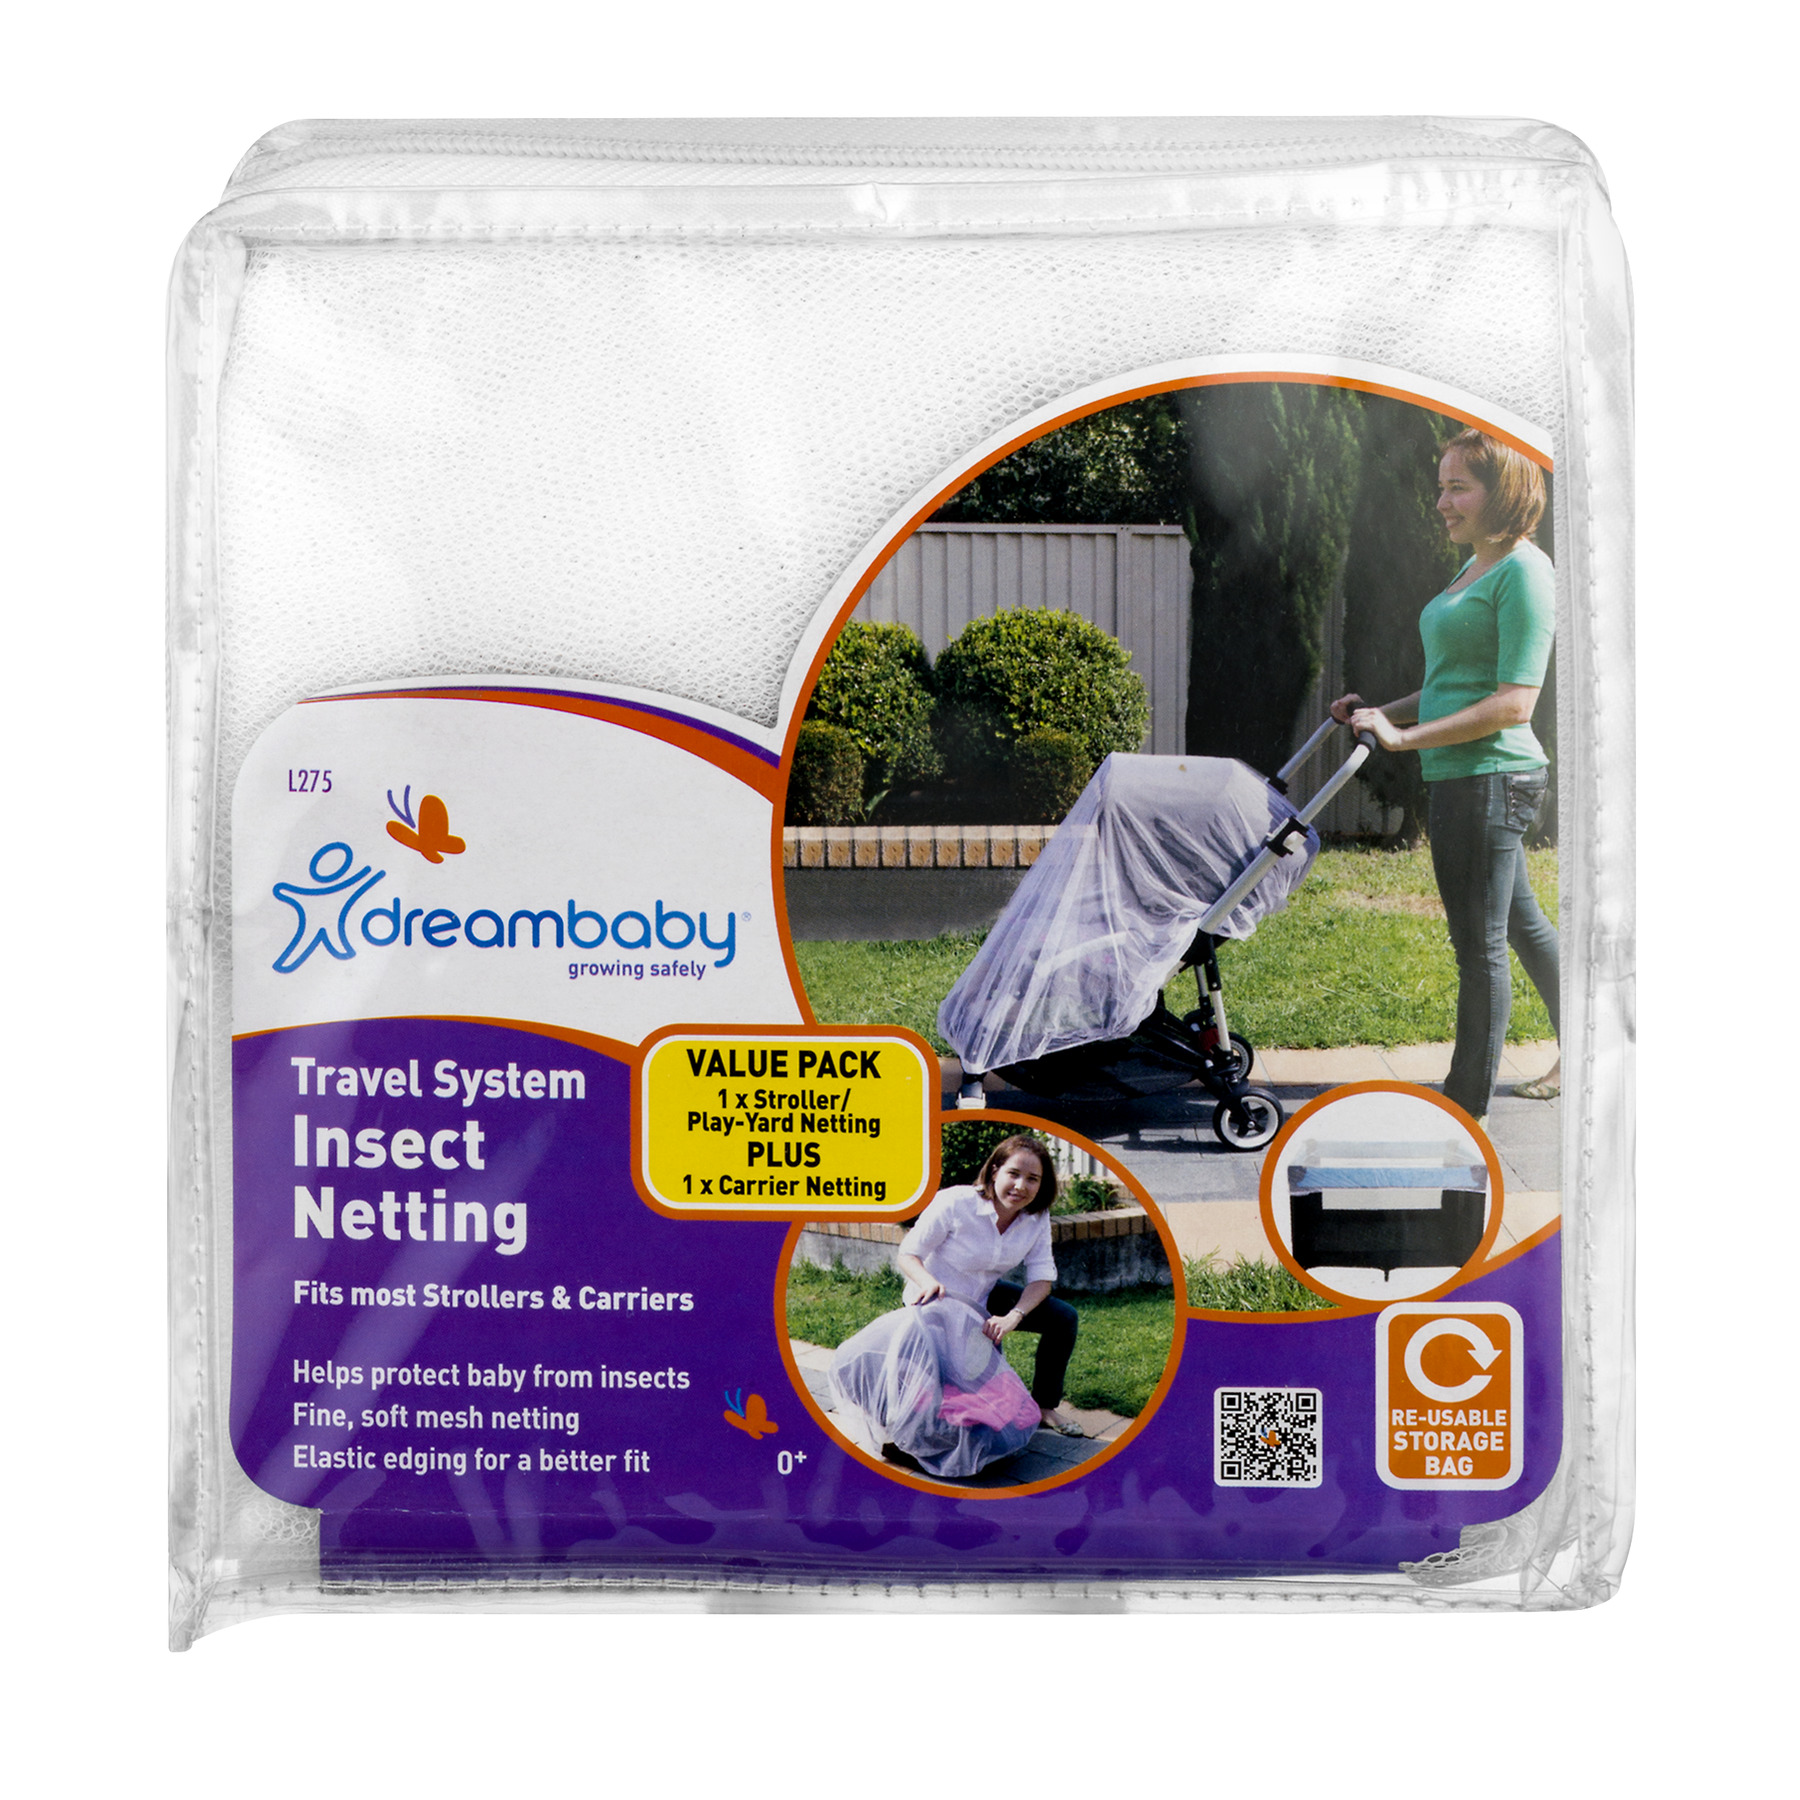 Dreambaby Travel System Insect Netting - 2 piece set